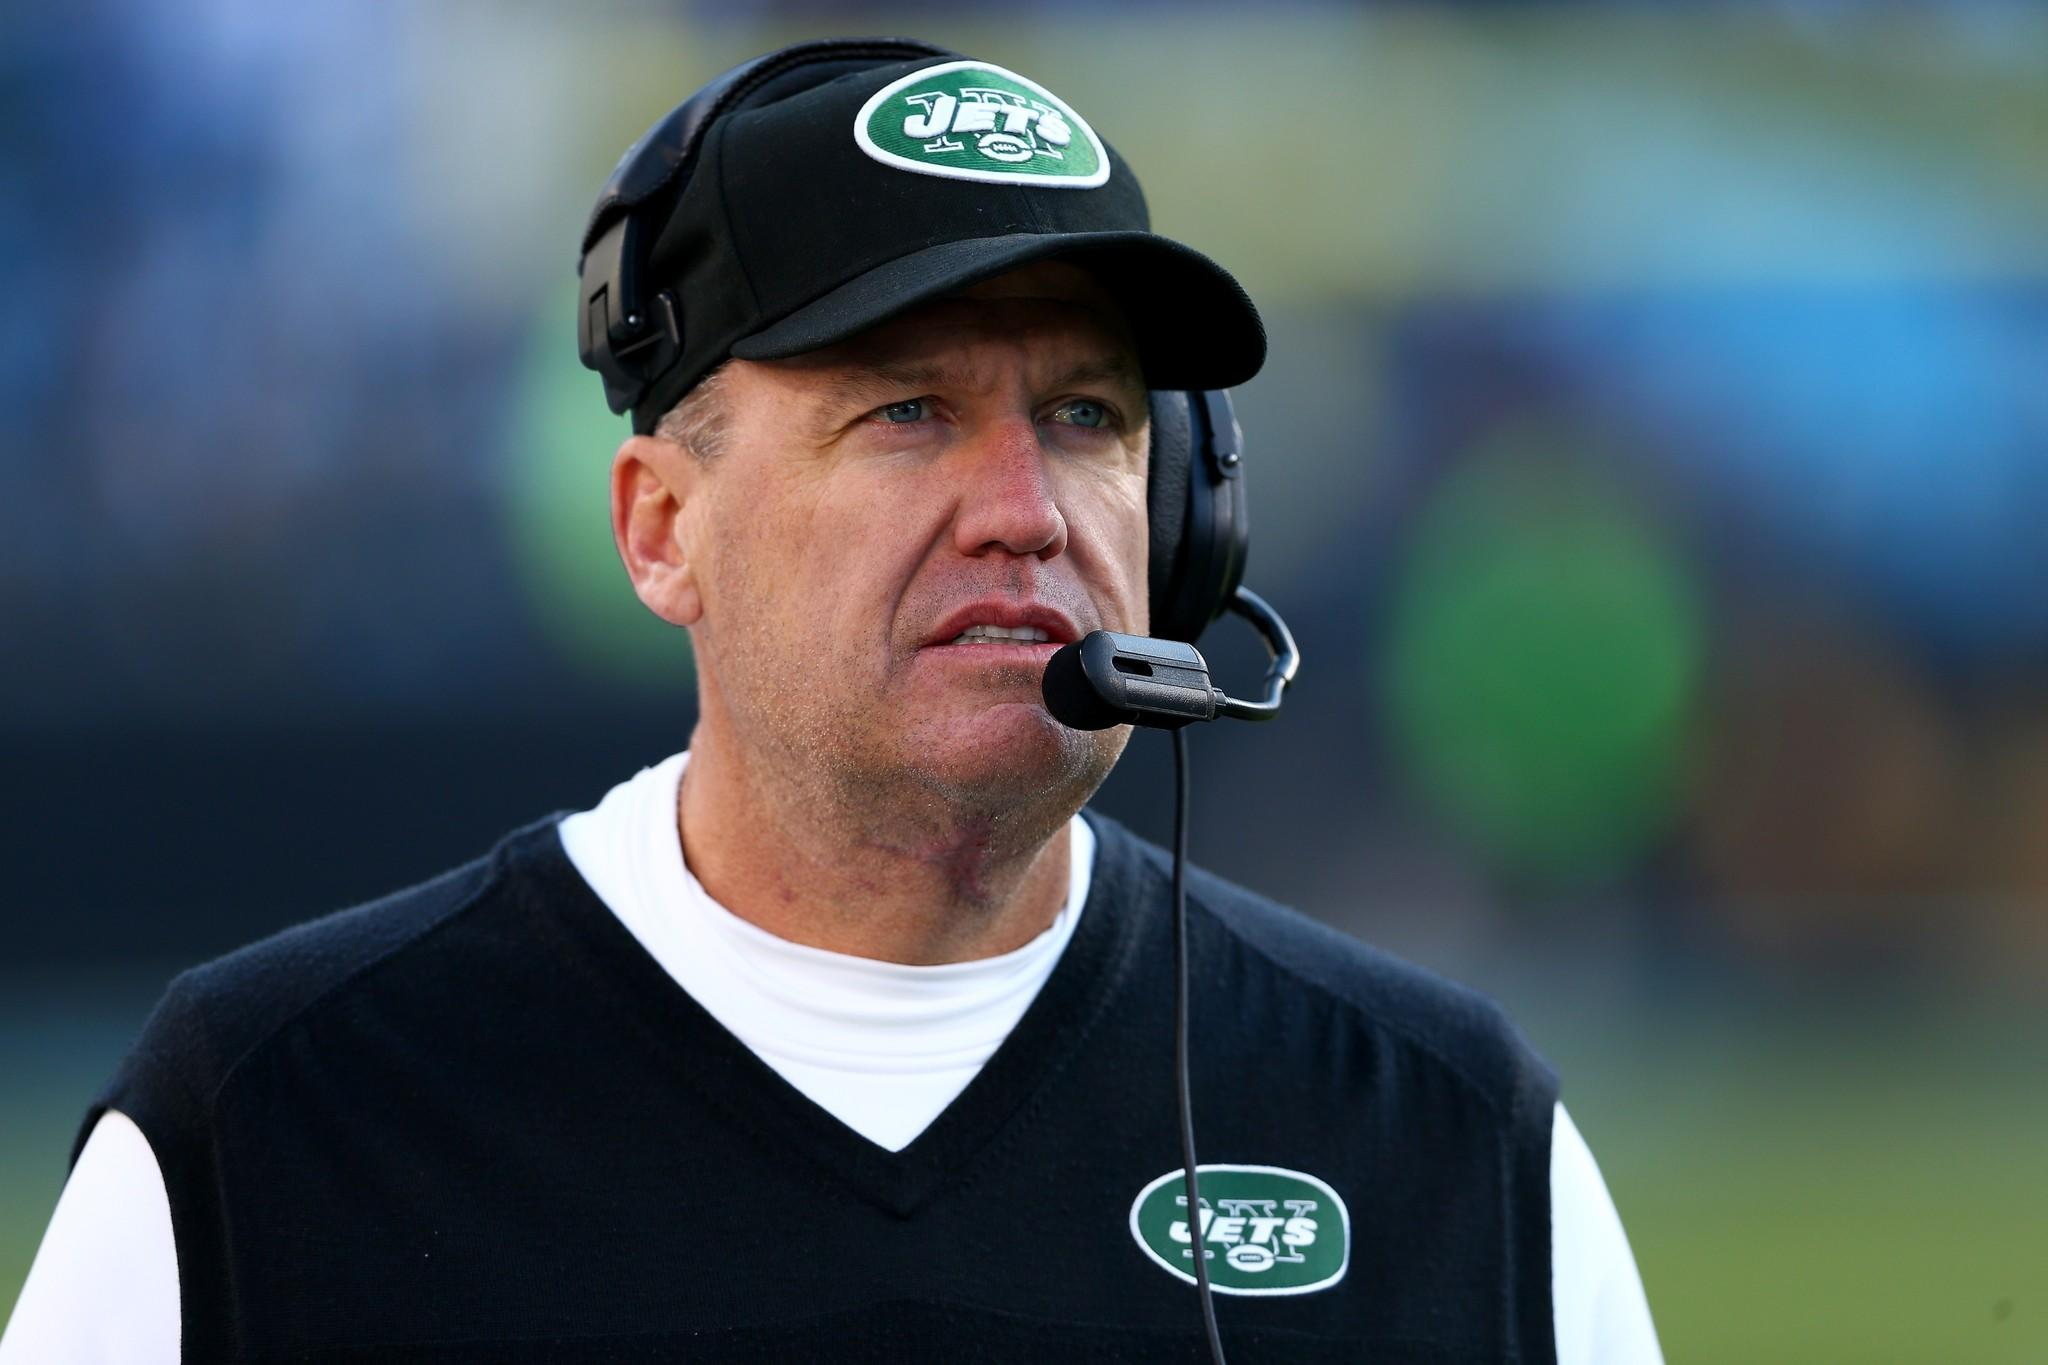 Head coach Rex Ryan of the Jets watches during their game against the Carolina Panthers at Bank of America Stadium.